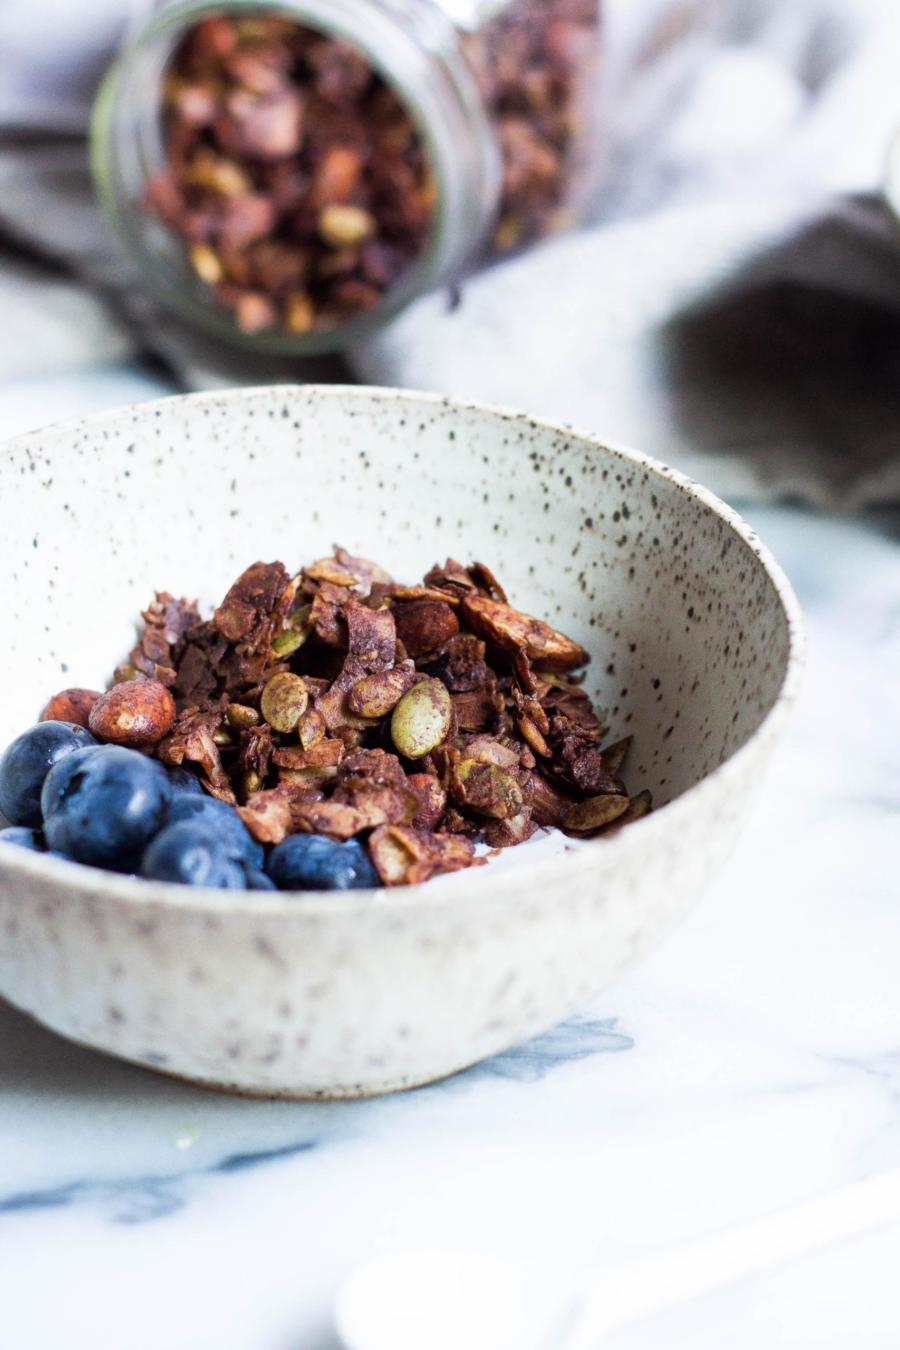 Chocolate granola blueberries